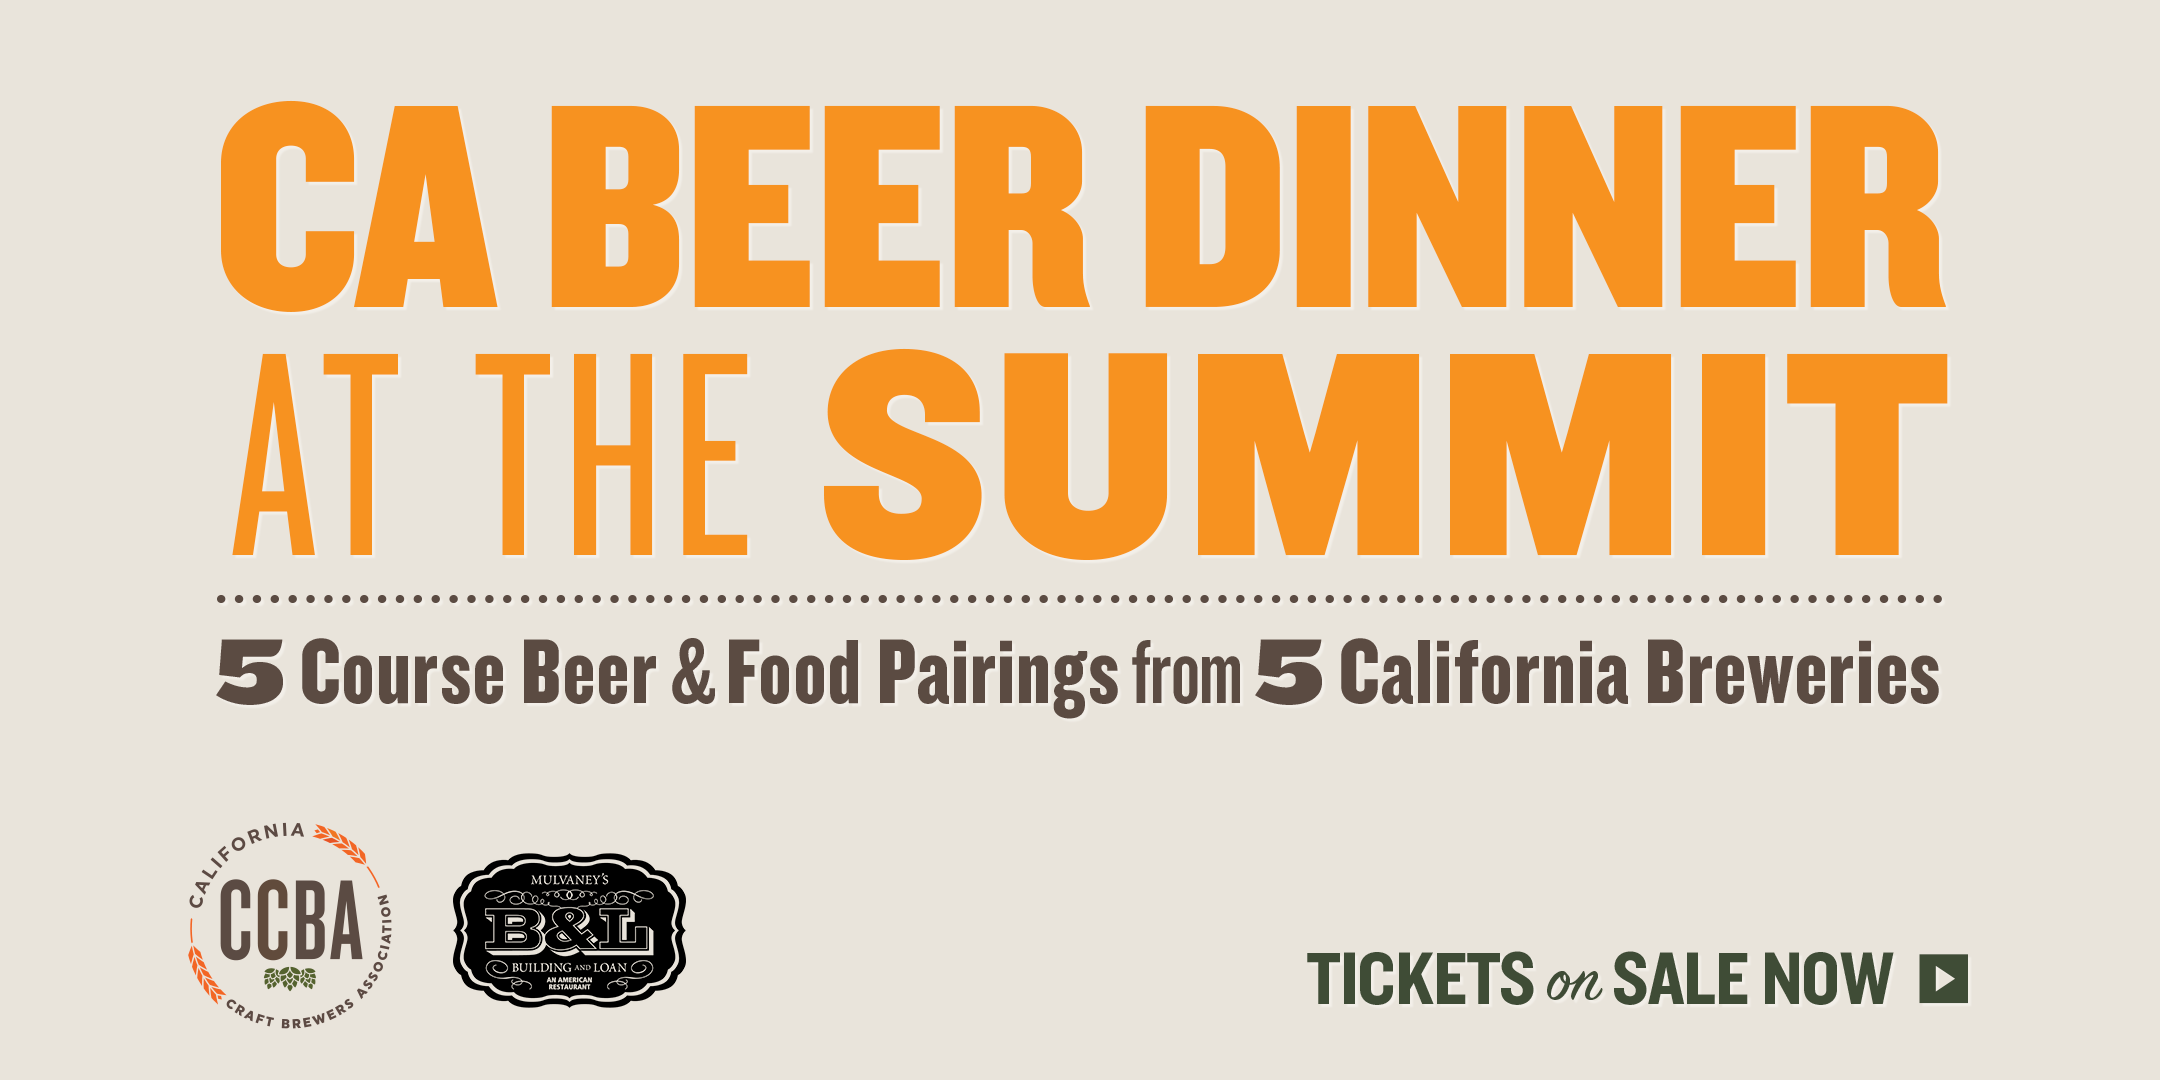 Kick off your 2017 Craft Beer Summit Weekend at the California Craft Beer Dinner, Wednesday September 6 2017